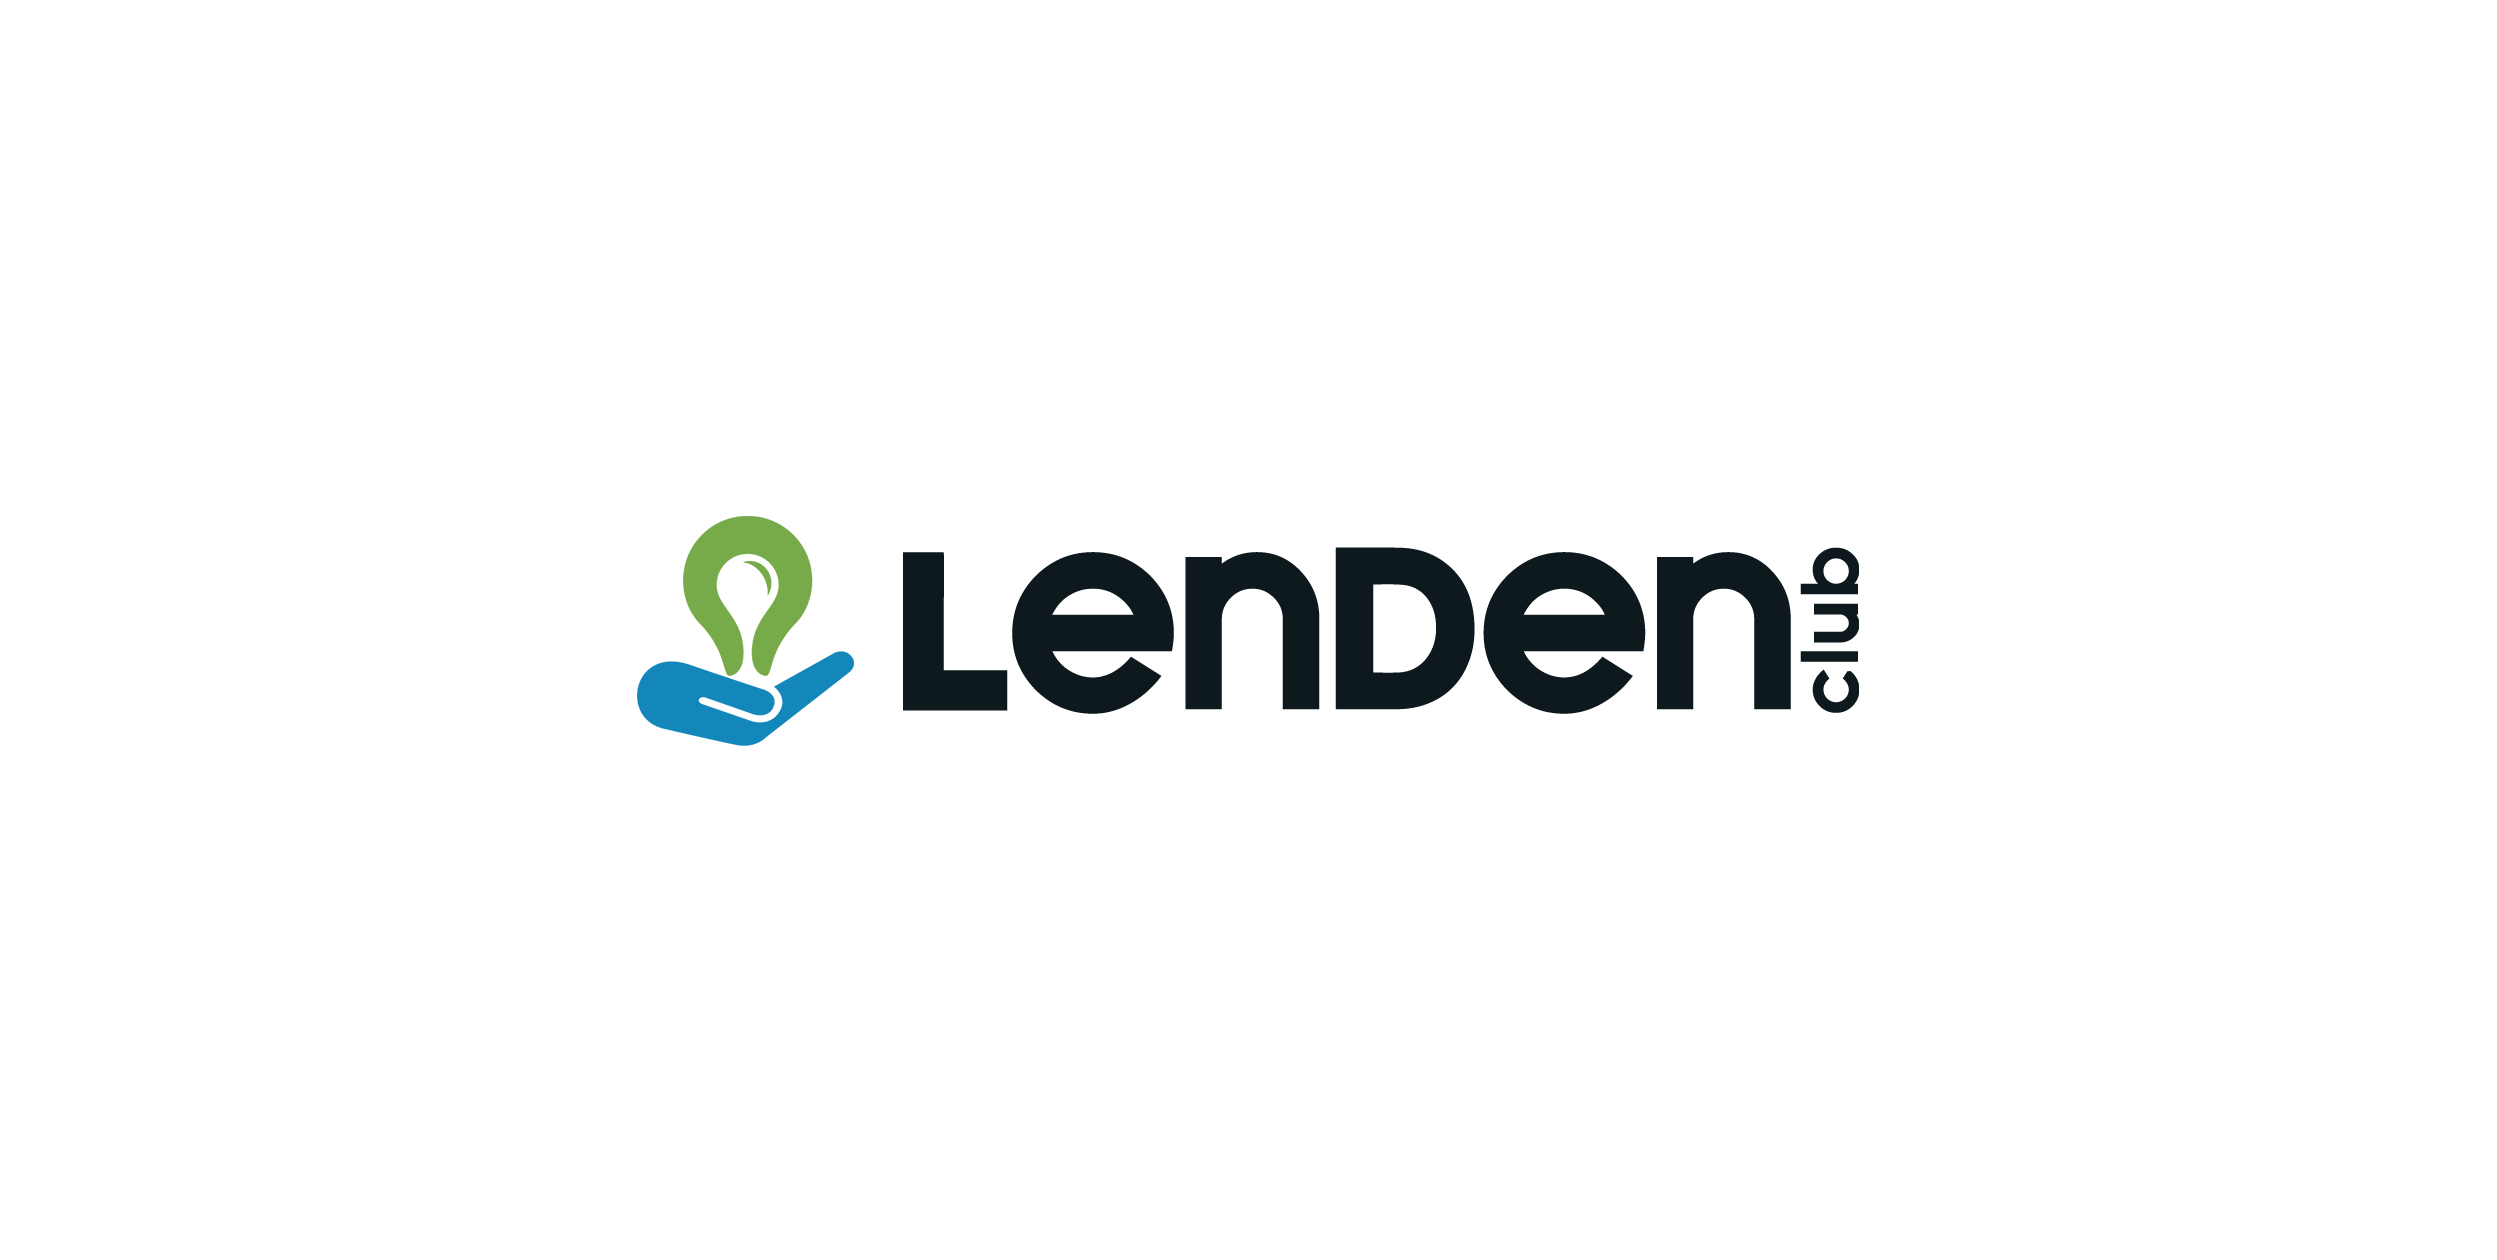 LenDenClub Launches InstaMoney Plus - First P2P Platform to Offer Digital Credit Card and UPI